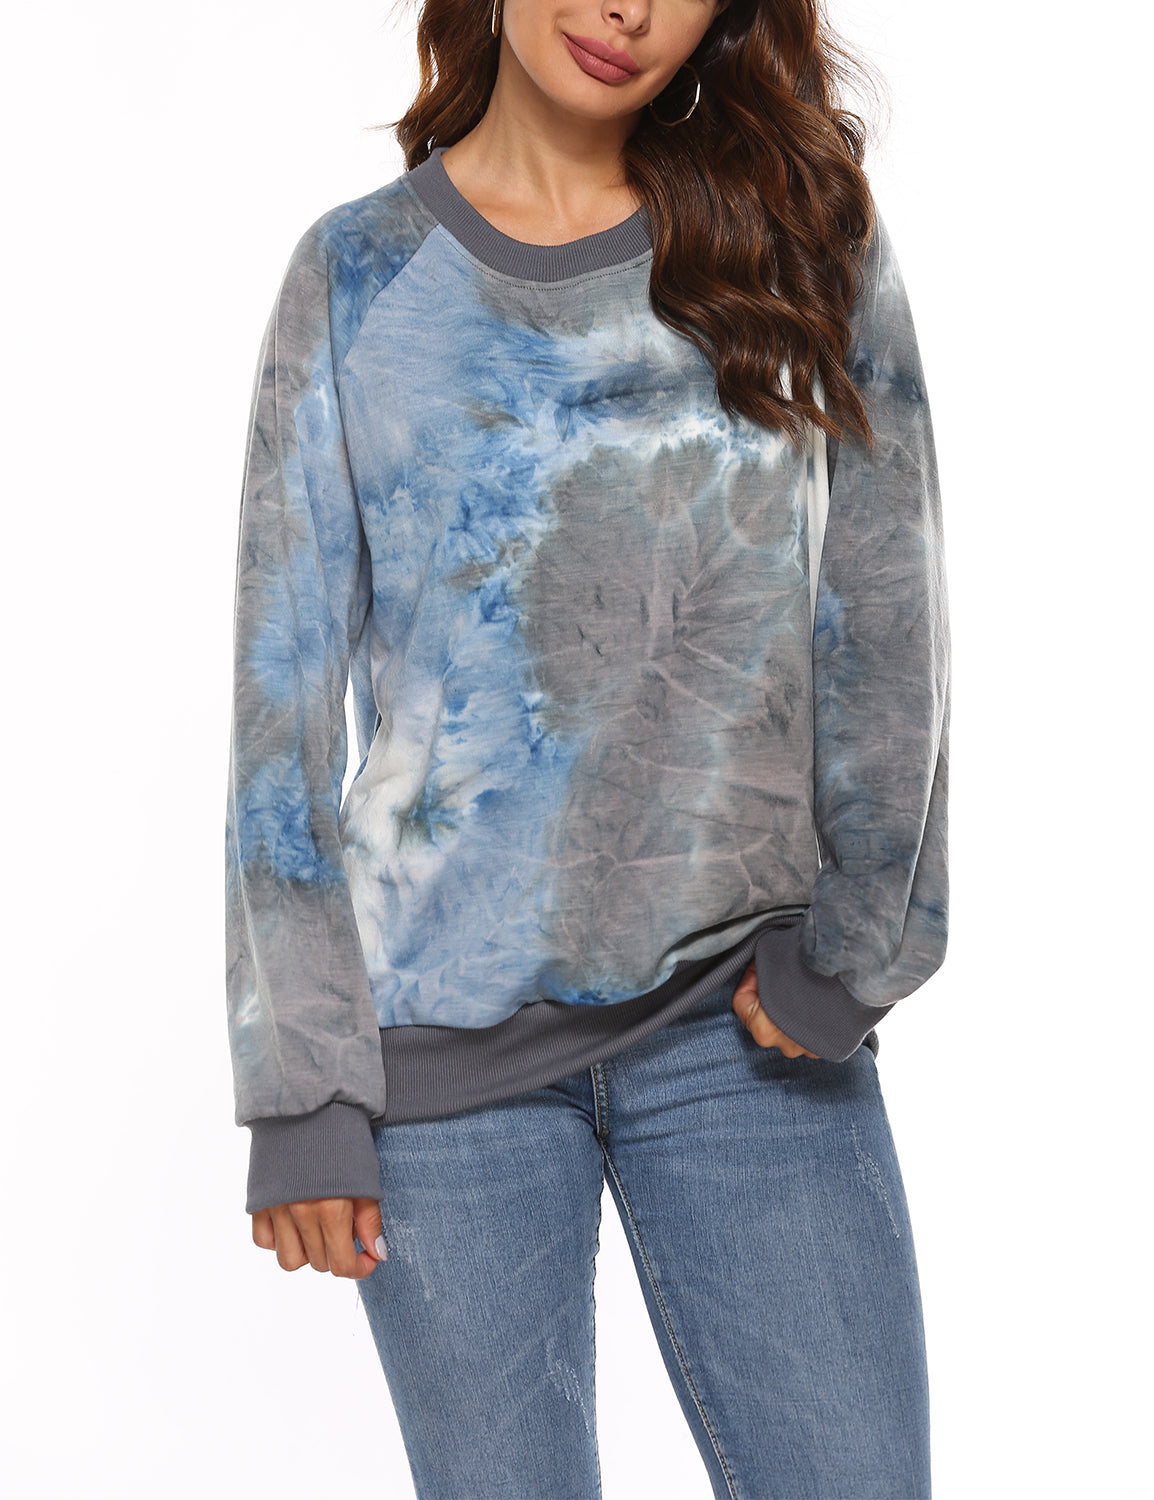 Stylish Blue&Gray Tie Dye Print Loose Sweatshirt - Blooming Jelly